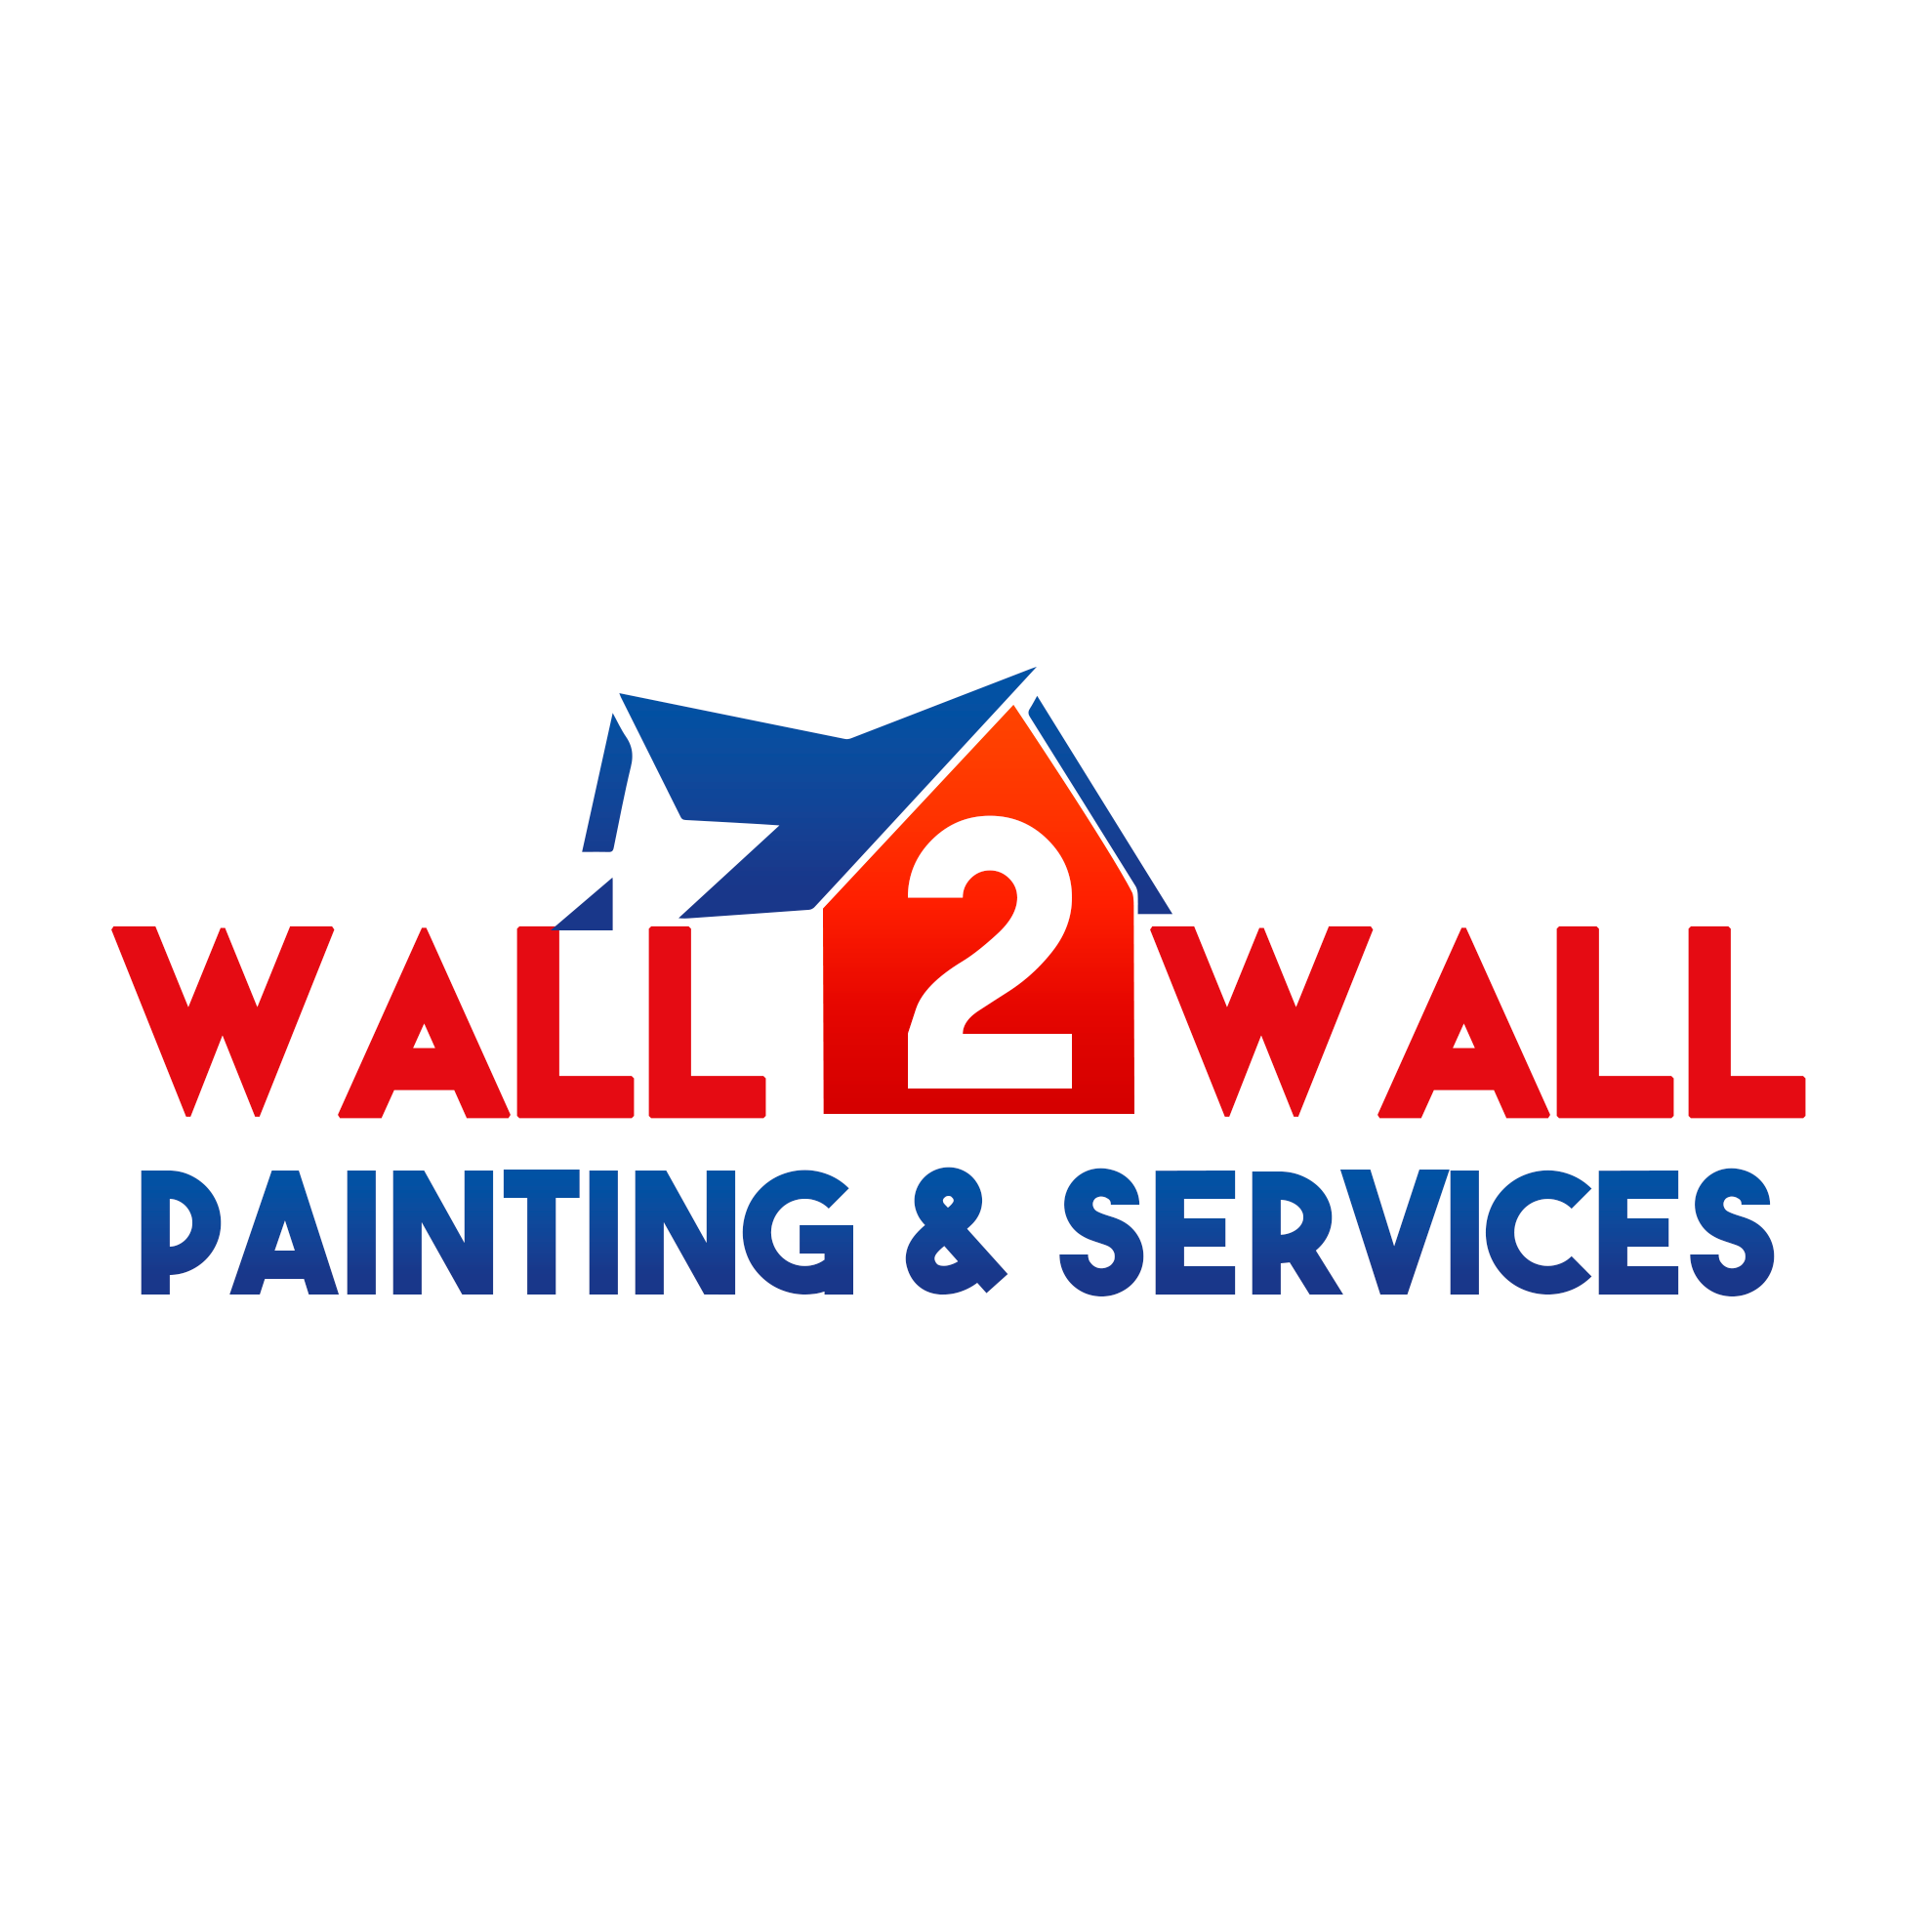 Wall 2 Wall Painting & Services